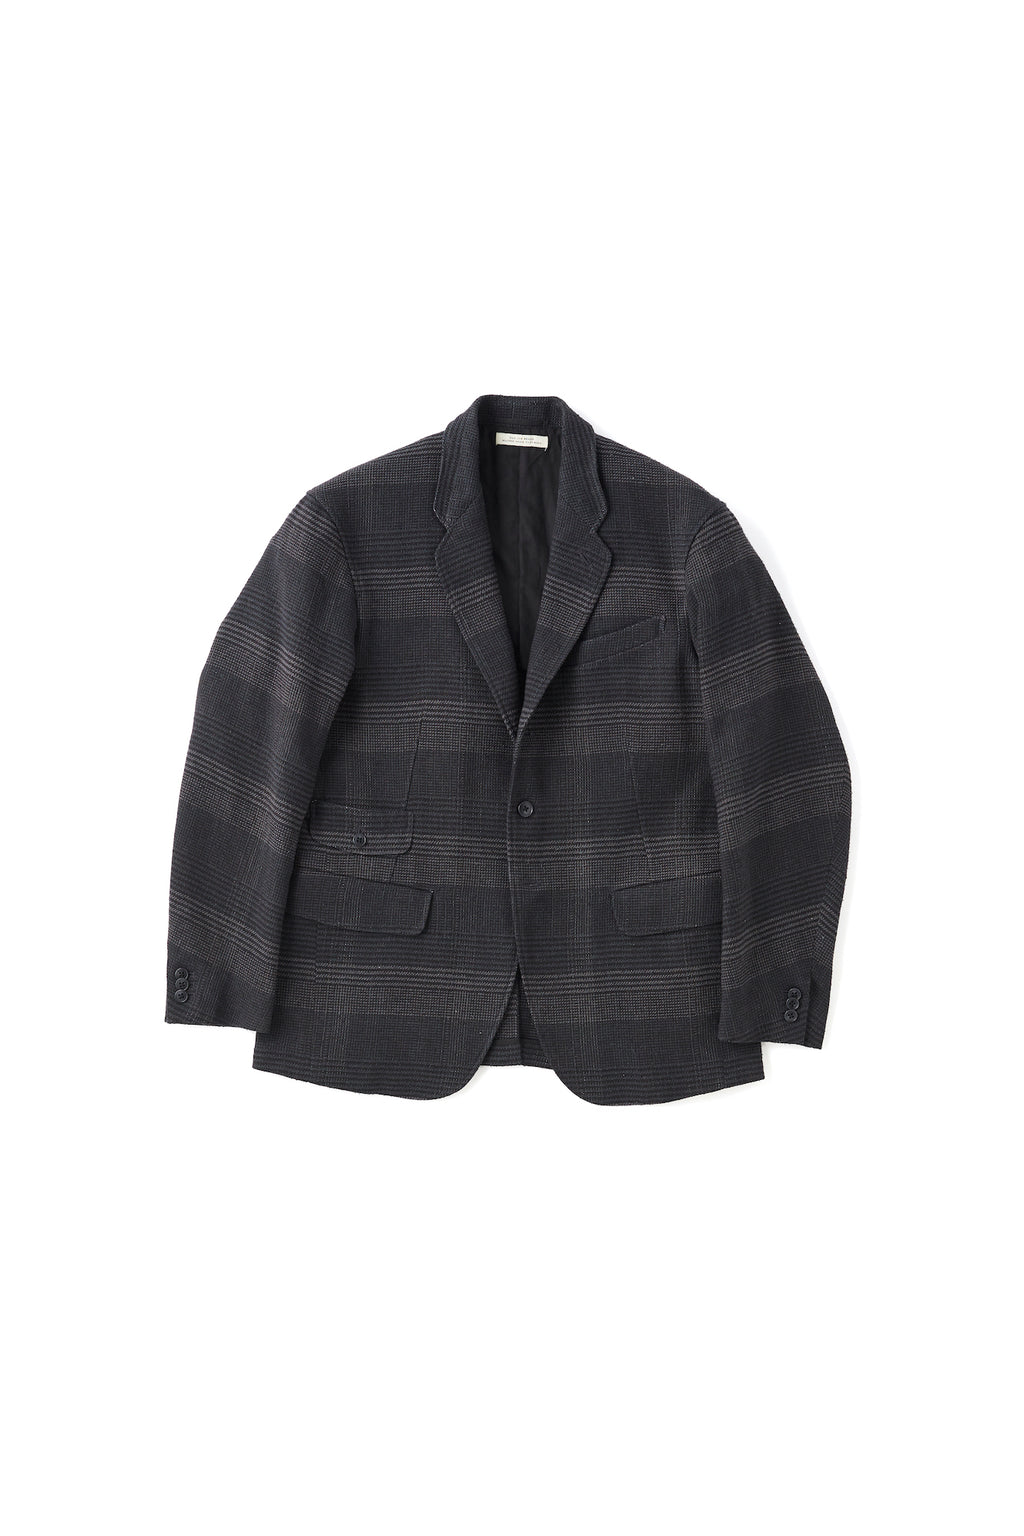 SINGLE-BREASTED GENTS JACKET - 201OJ-JK01